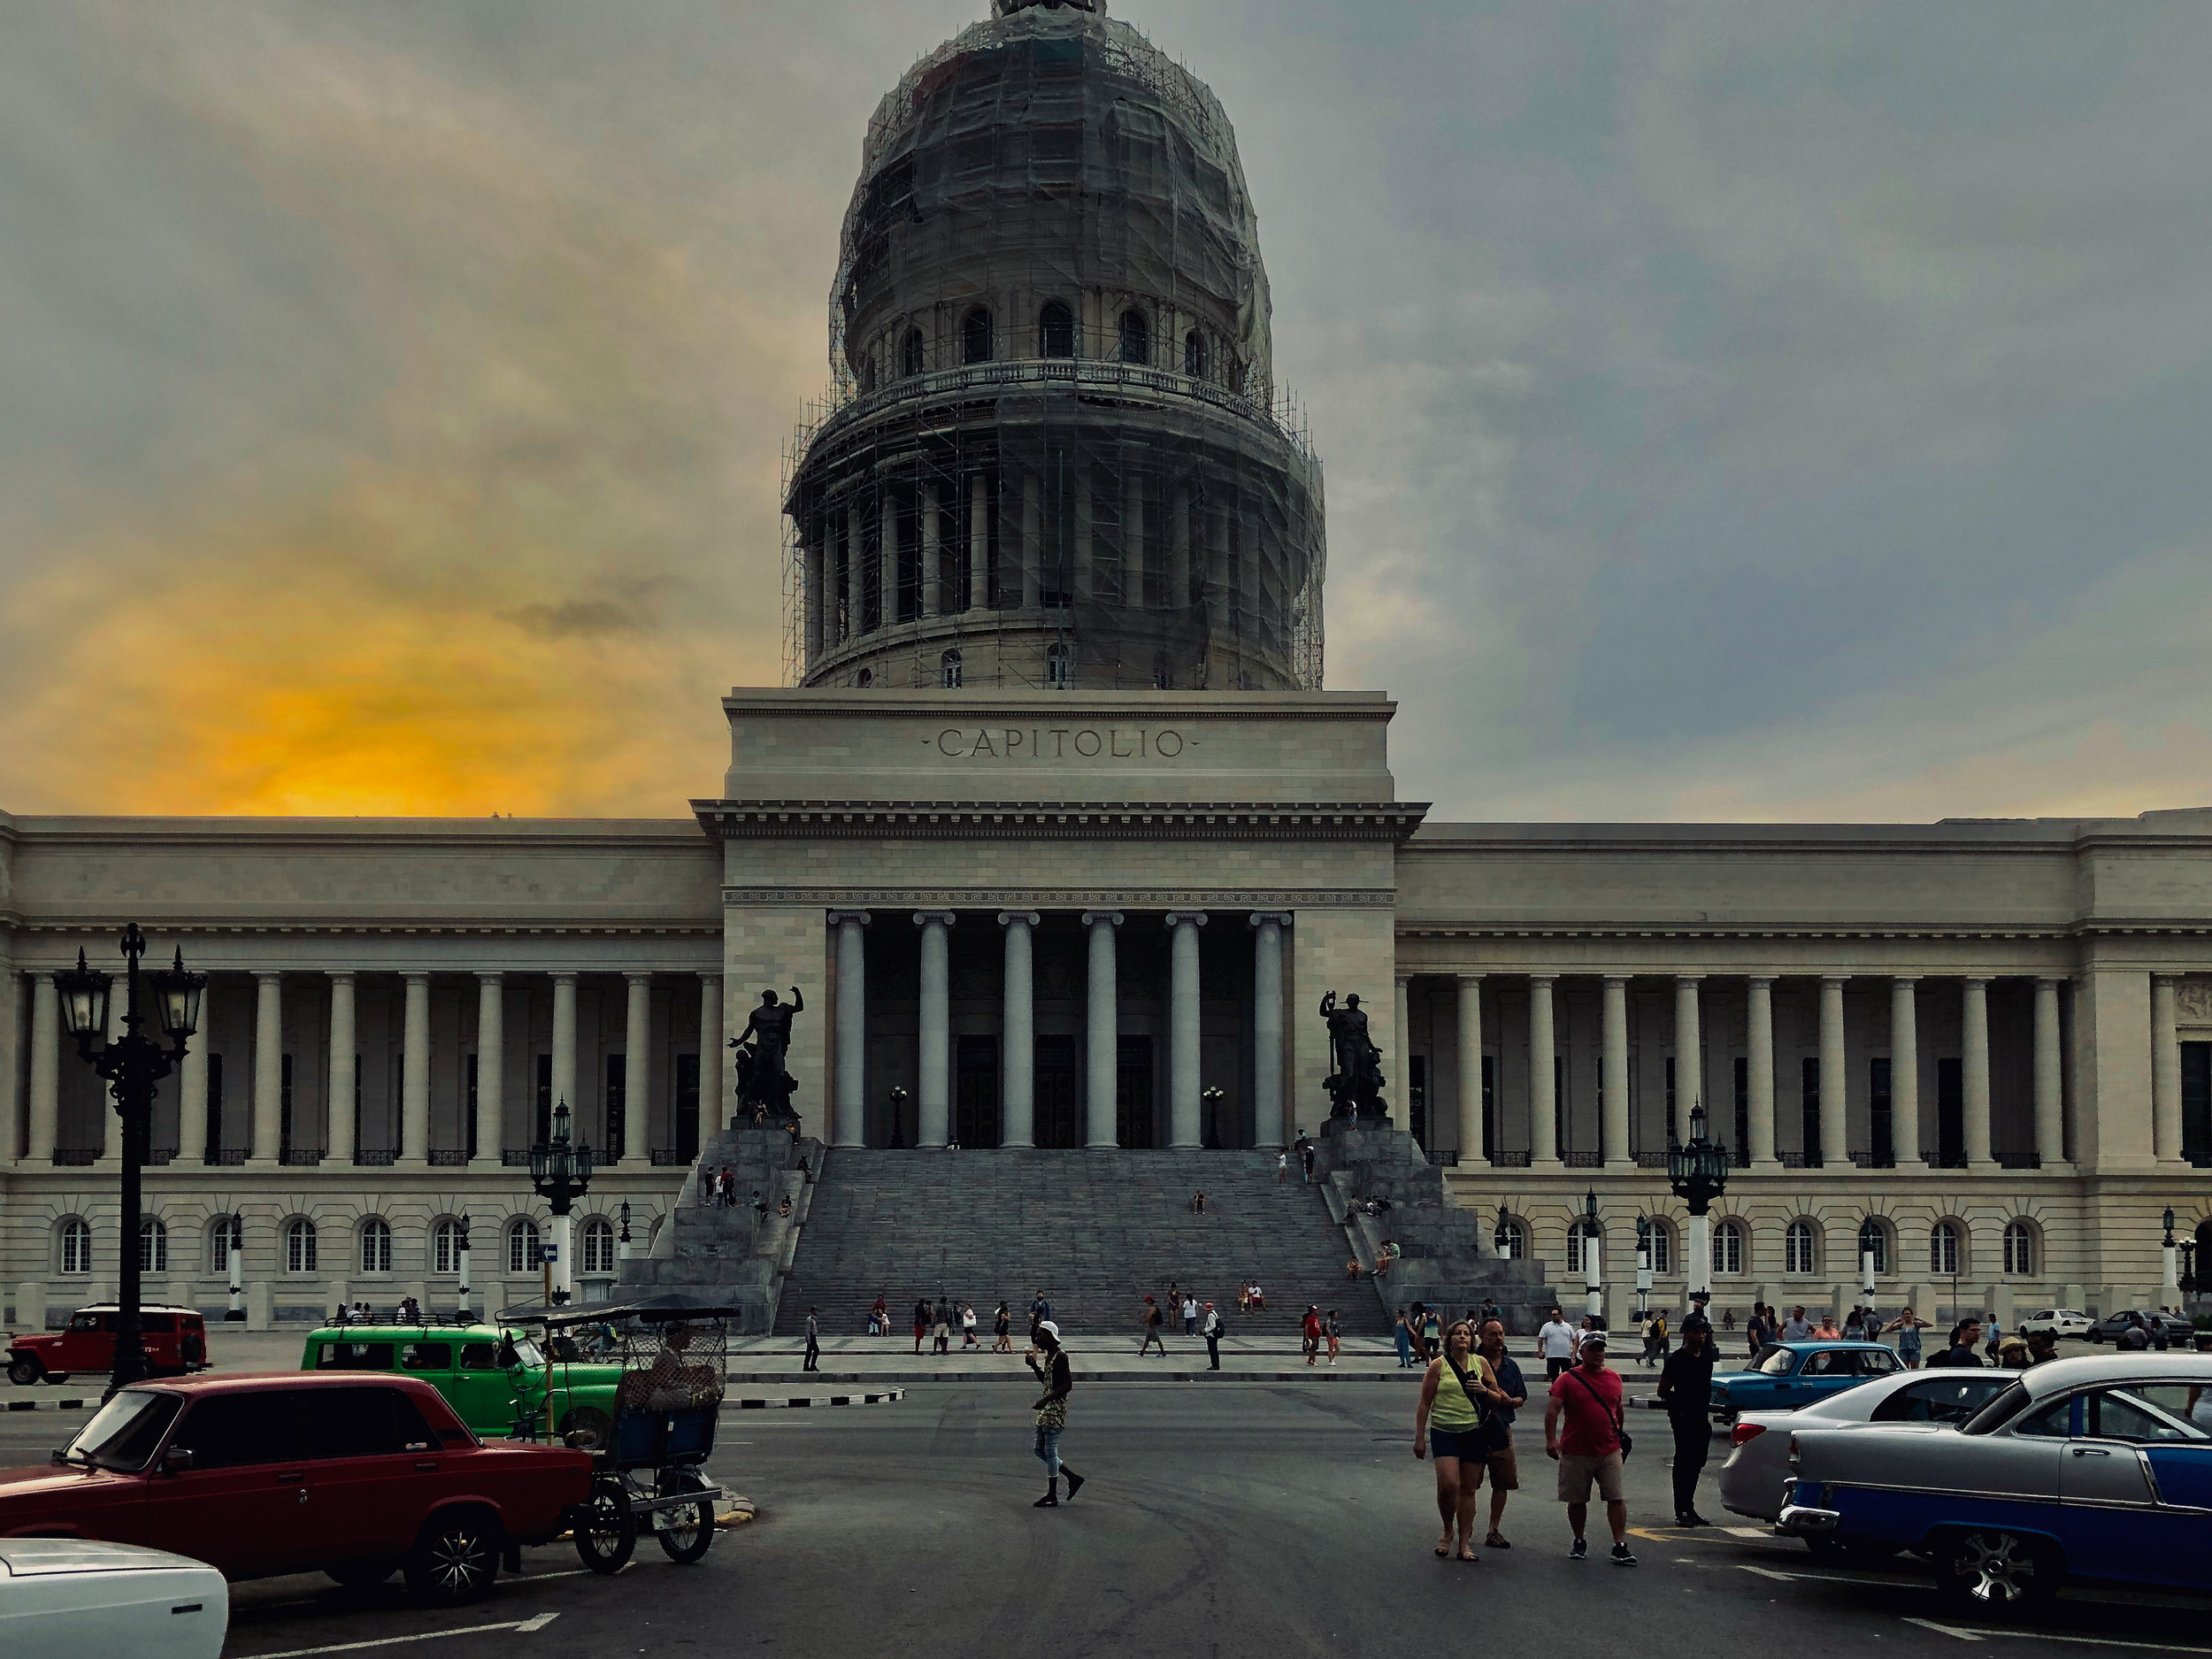 Capitolio sunset.jpg